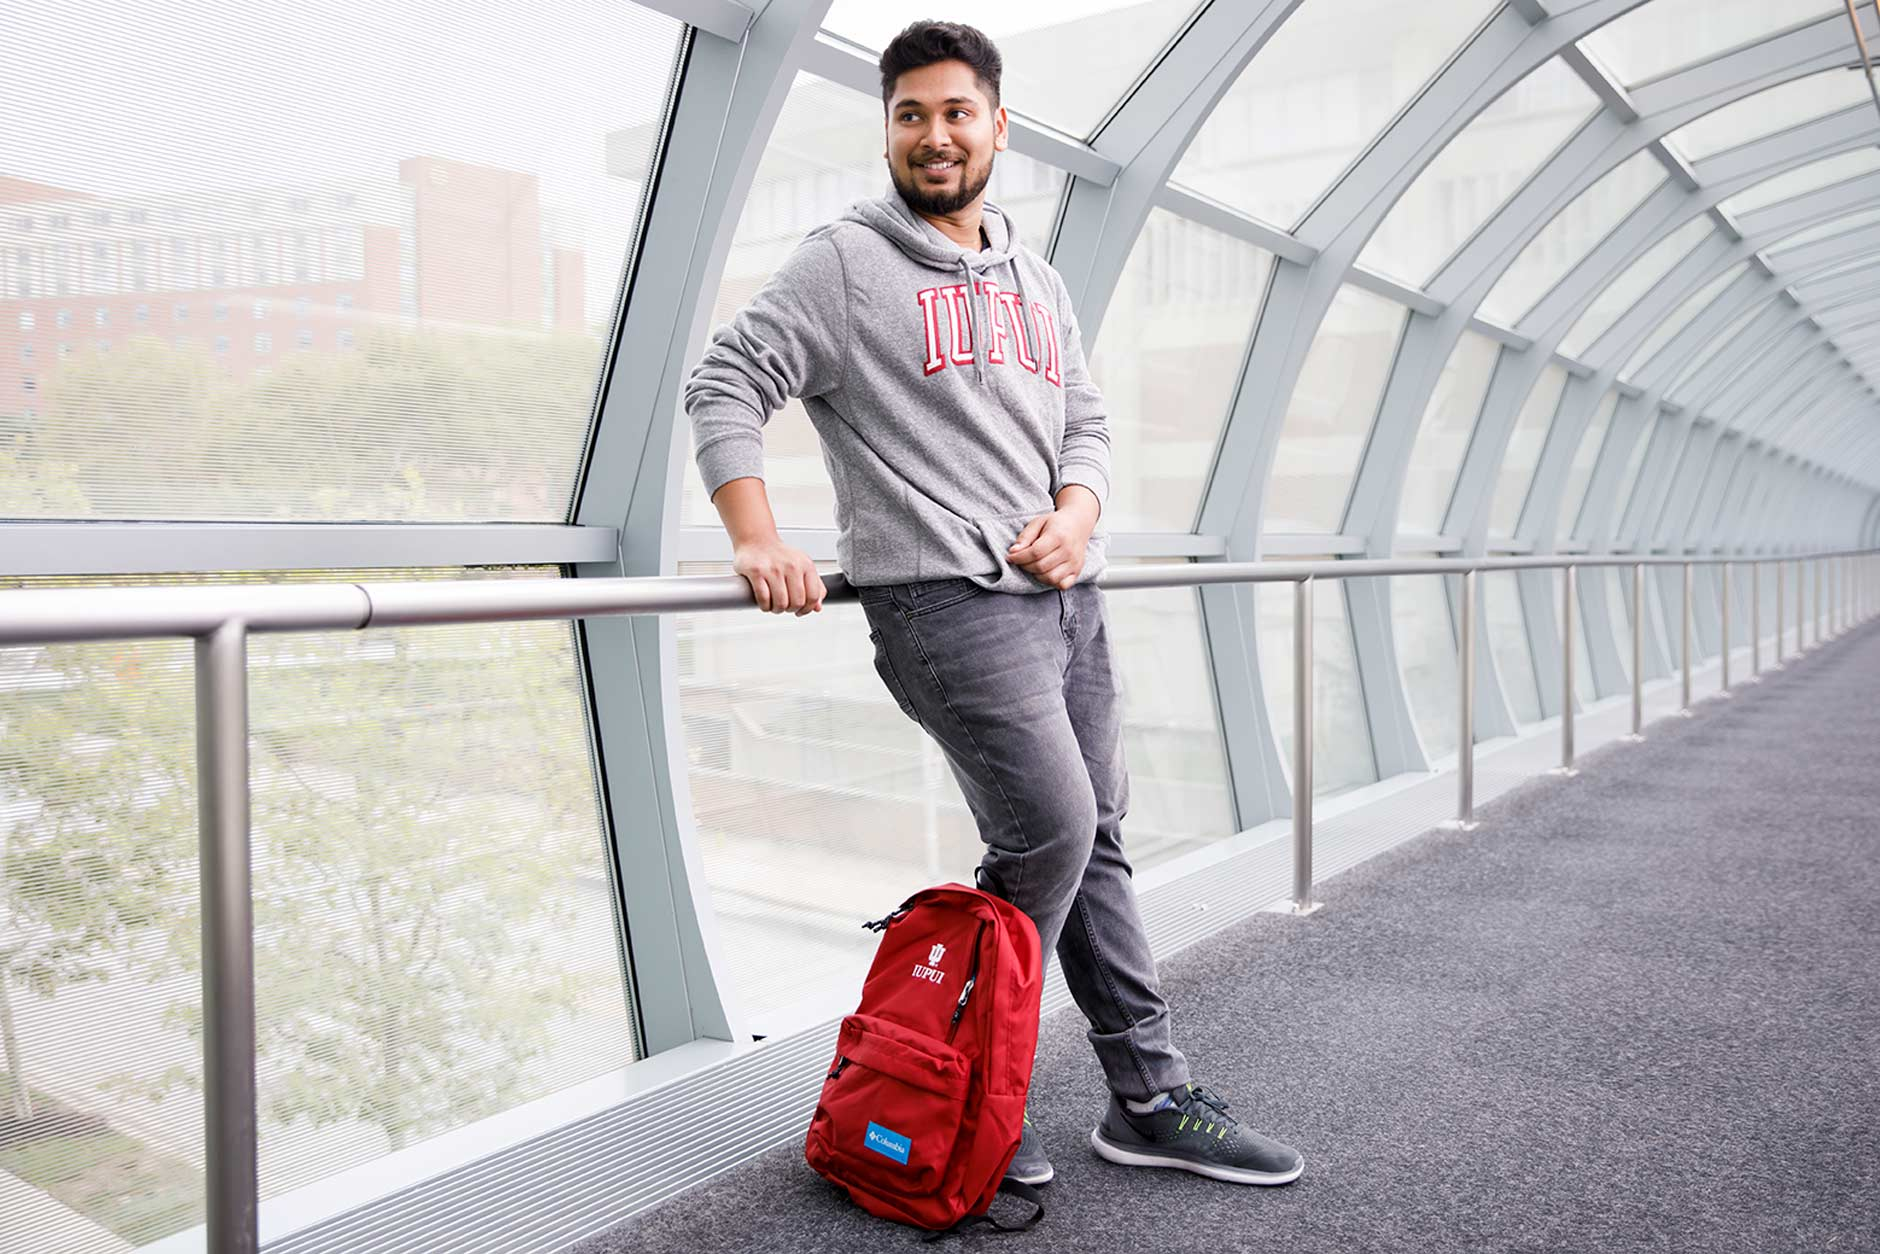 IUPUI student Harshal Dhamade poses for a portrait during a IUPUI apparel fashion photo shoot at the Campus Center on Wednesday, Aug. 8, 2018.